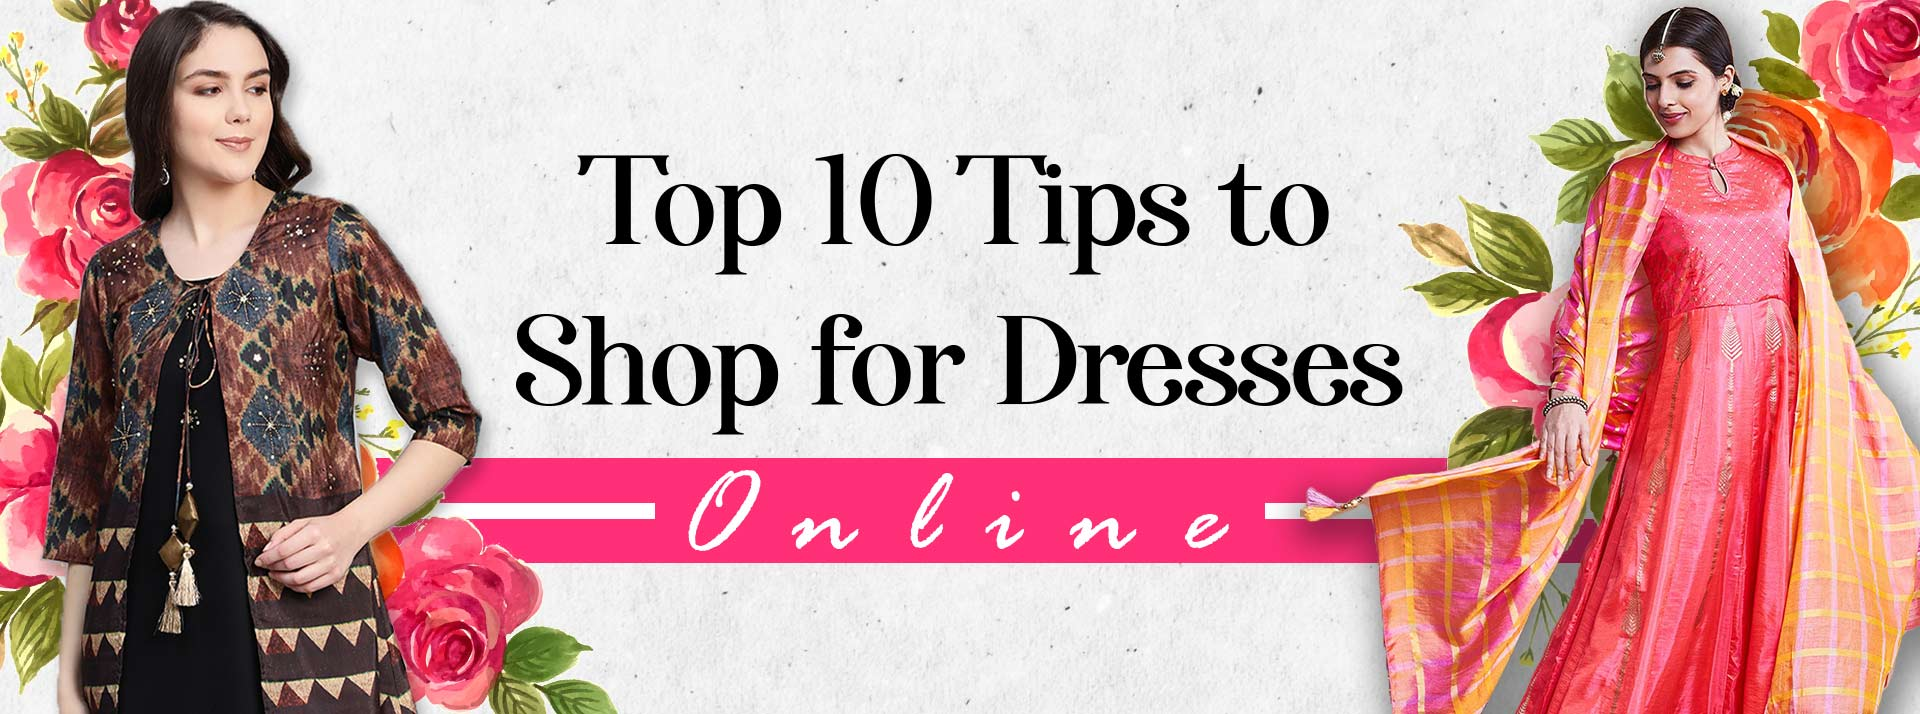 Top 10 Tips to Shop for Dresses Online